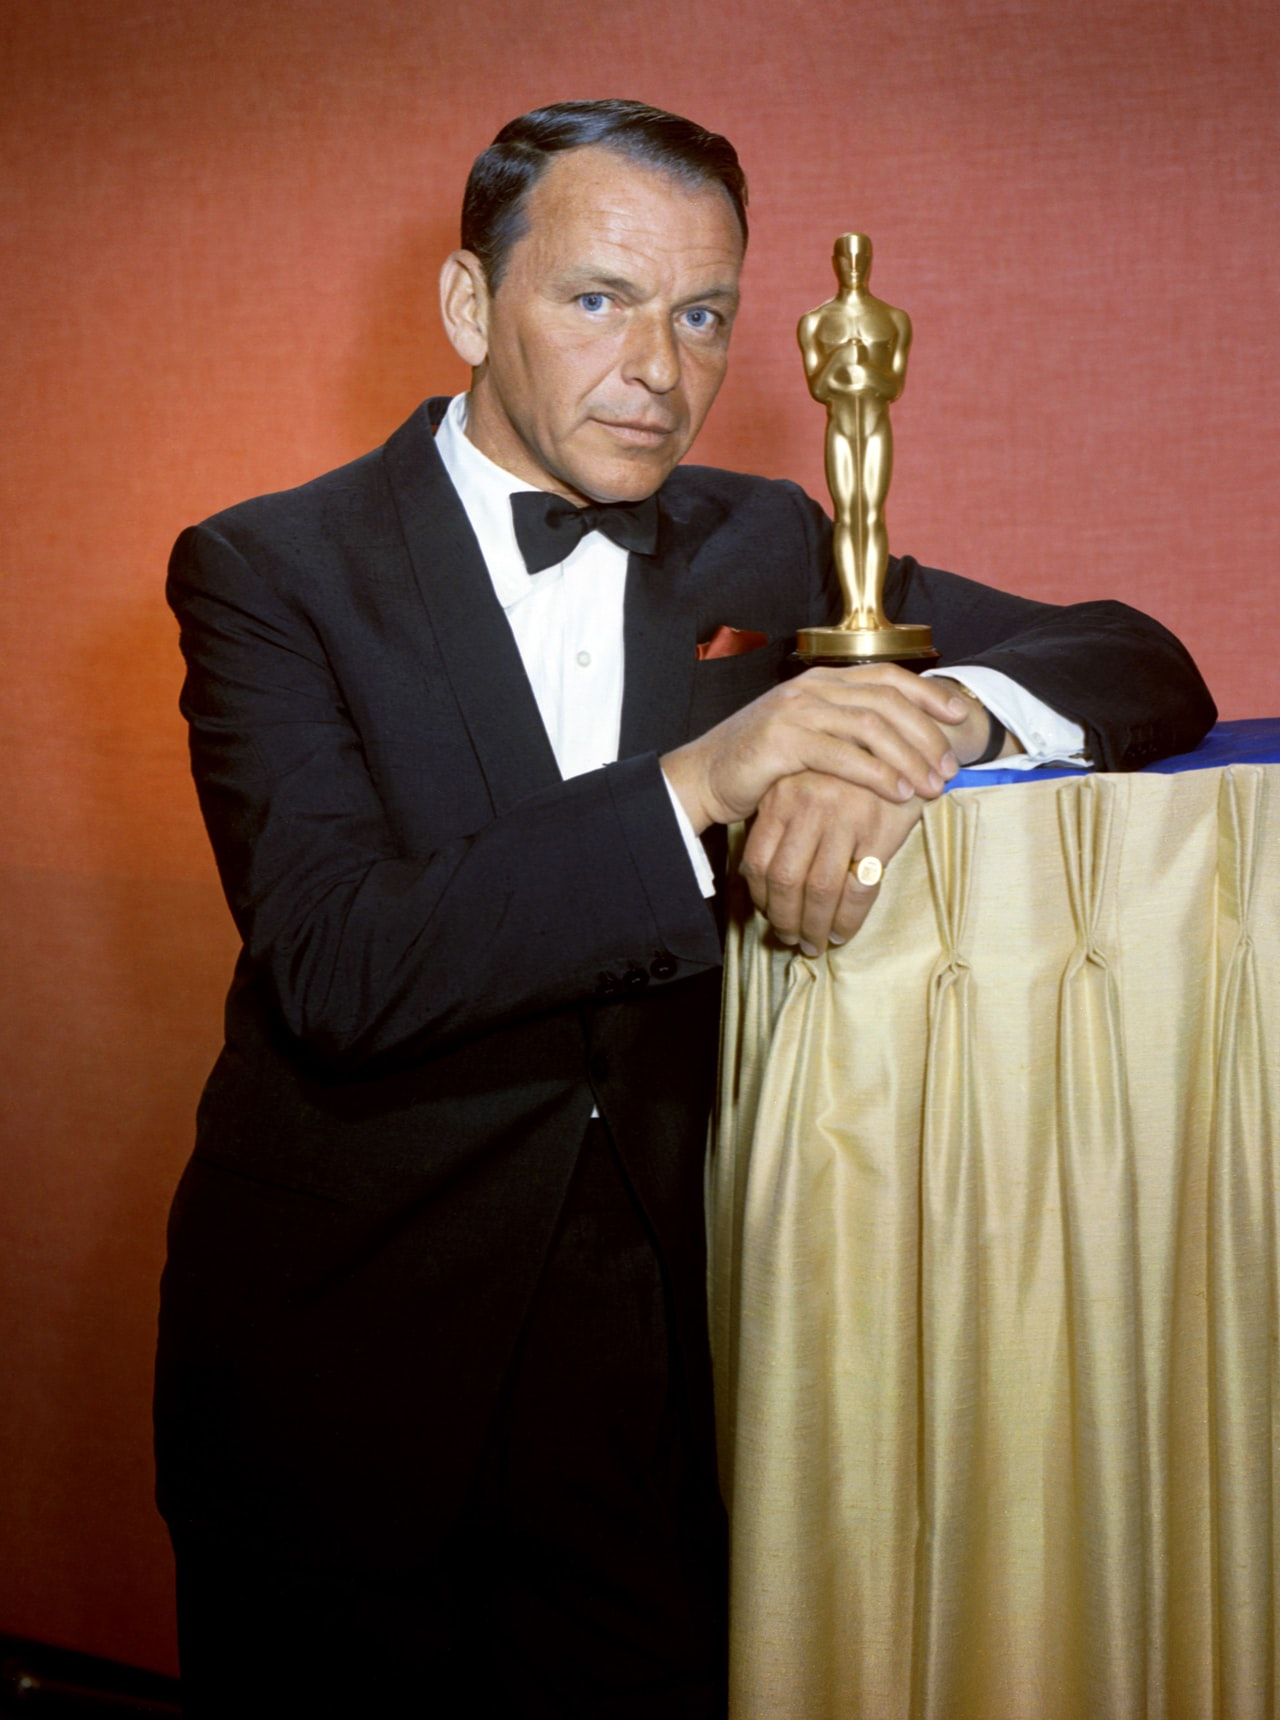 frank sinatra in black tie, with wristwatch